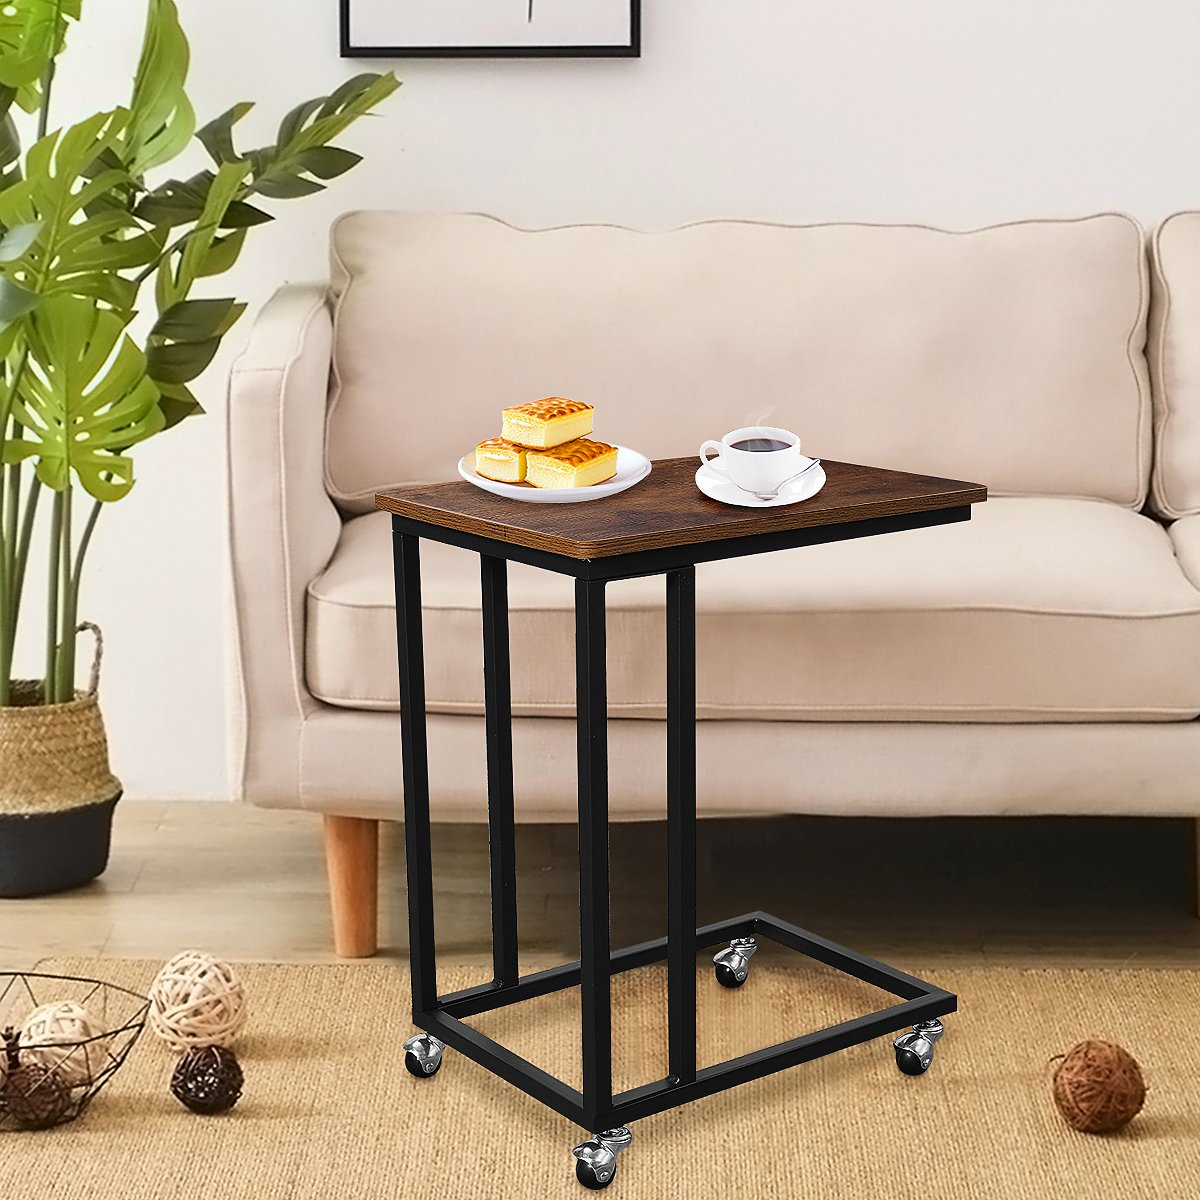 Mobile C Shape Side Table Sofa Couch Side Table Tray for Snack Coffee Laptop Tablet, C End Table for Living Room